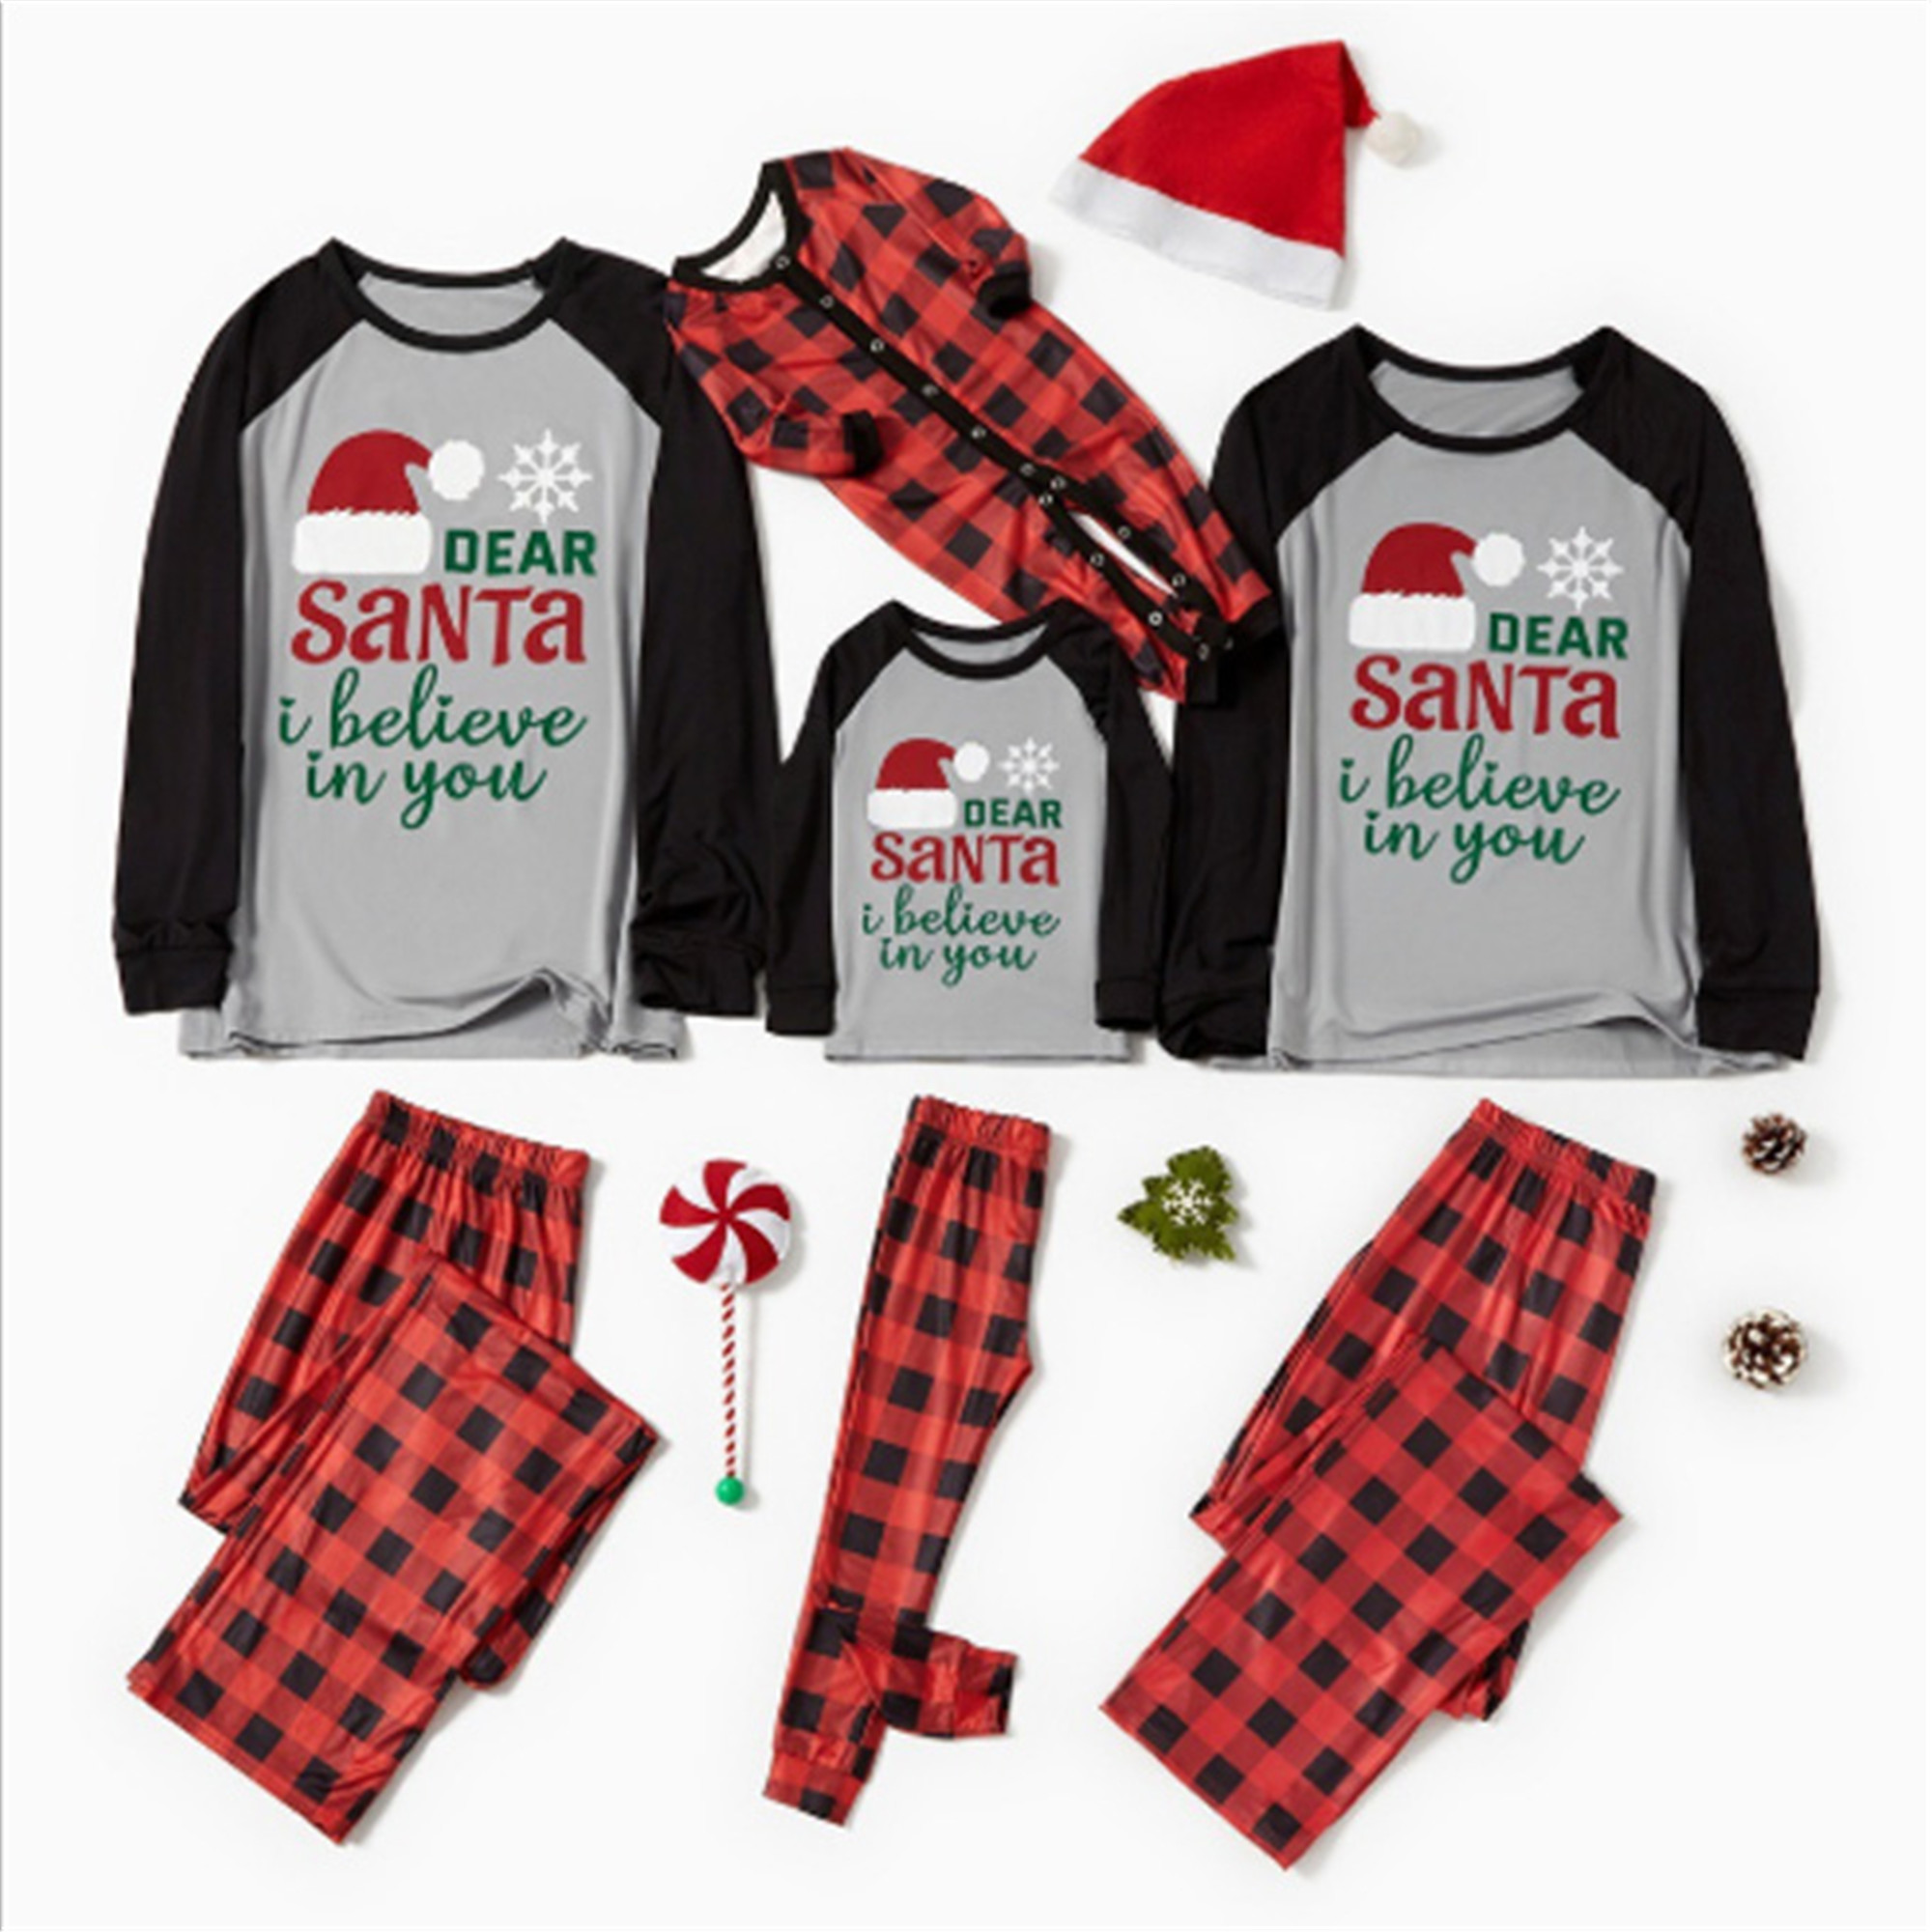 Matching Christmas Pajamas Cotton Letter Printed Long Sleeve Shirt Top Red Plaid Pant Xmas Pajamas Set for Family